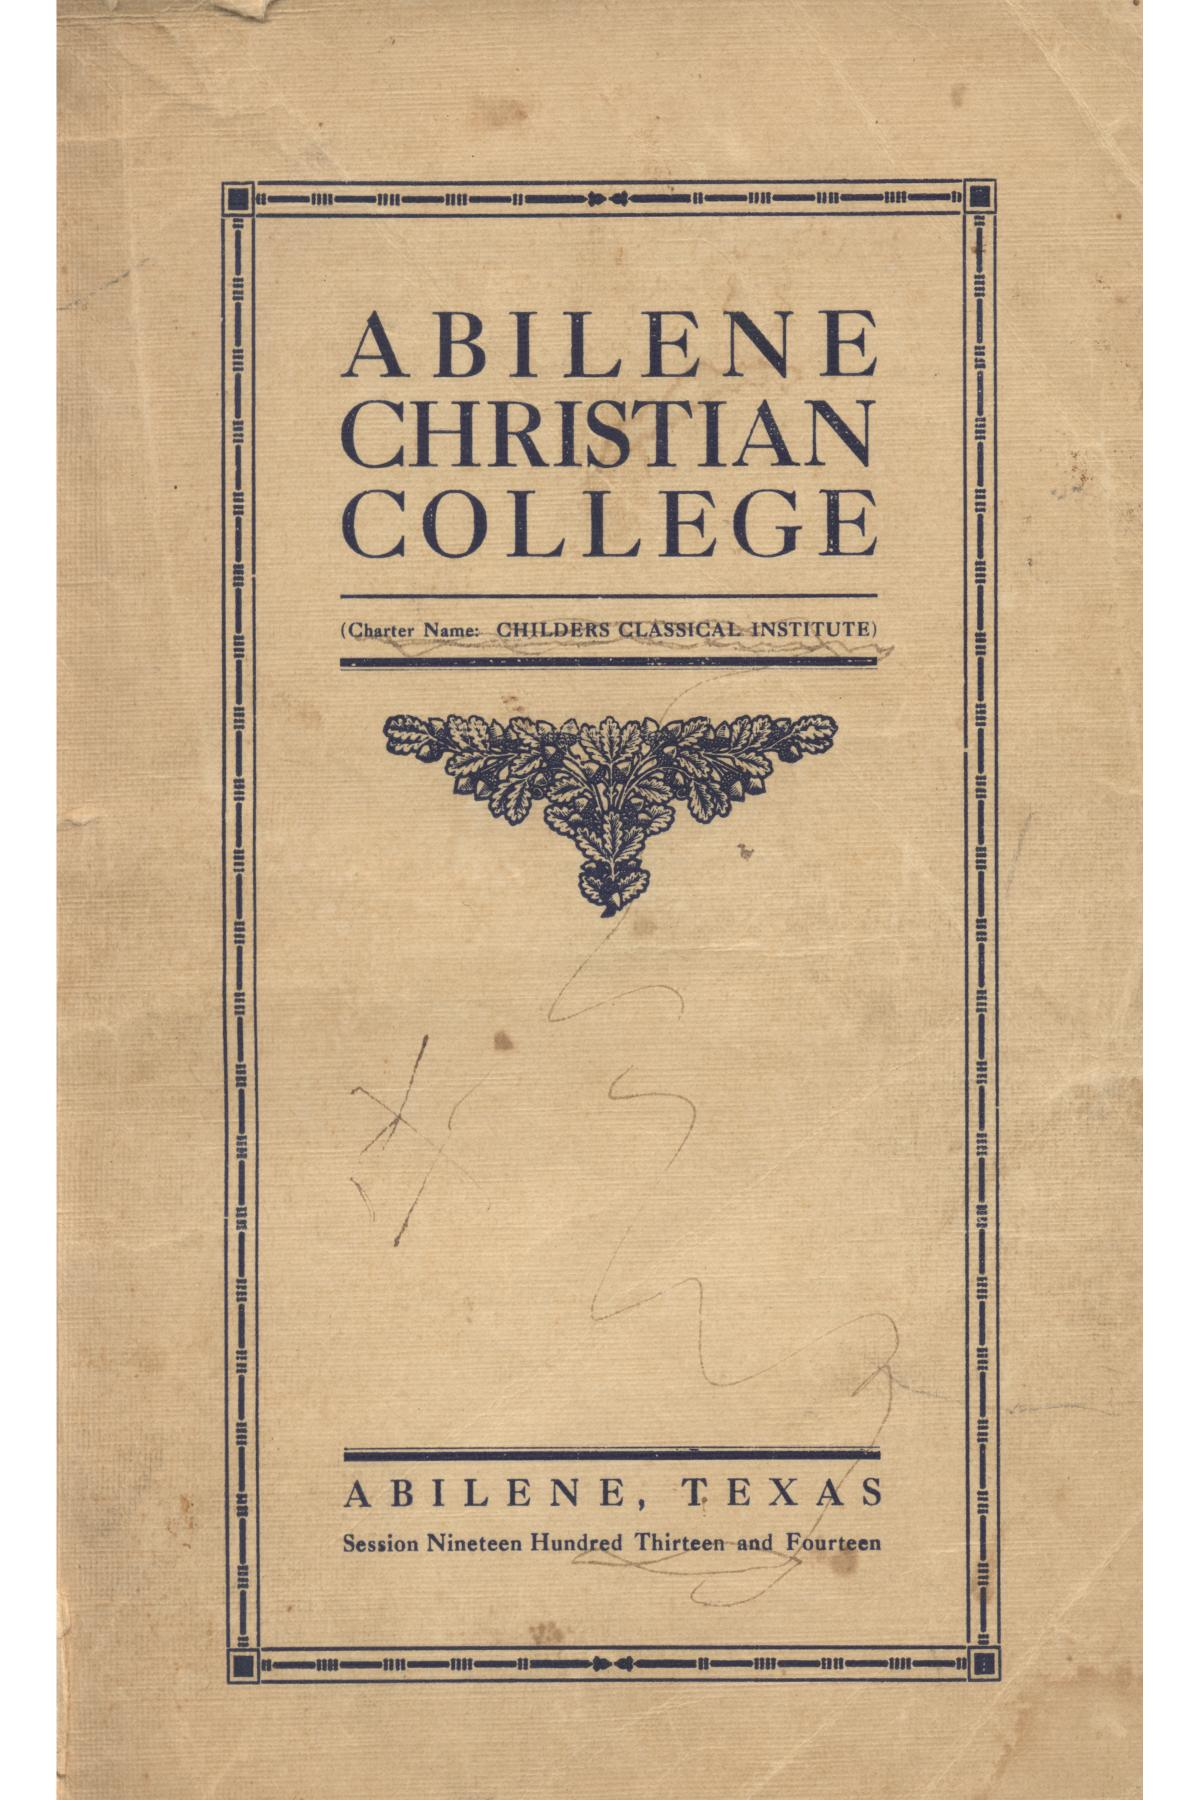 Catalog of Abilene Christian College, 1913-1914                                                                                                      [Sequence #]: 1 of 77